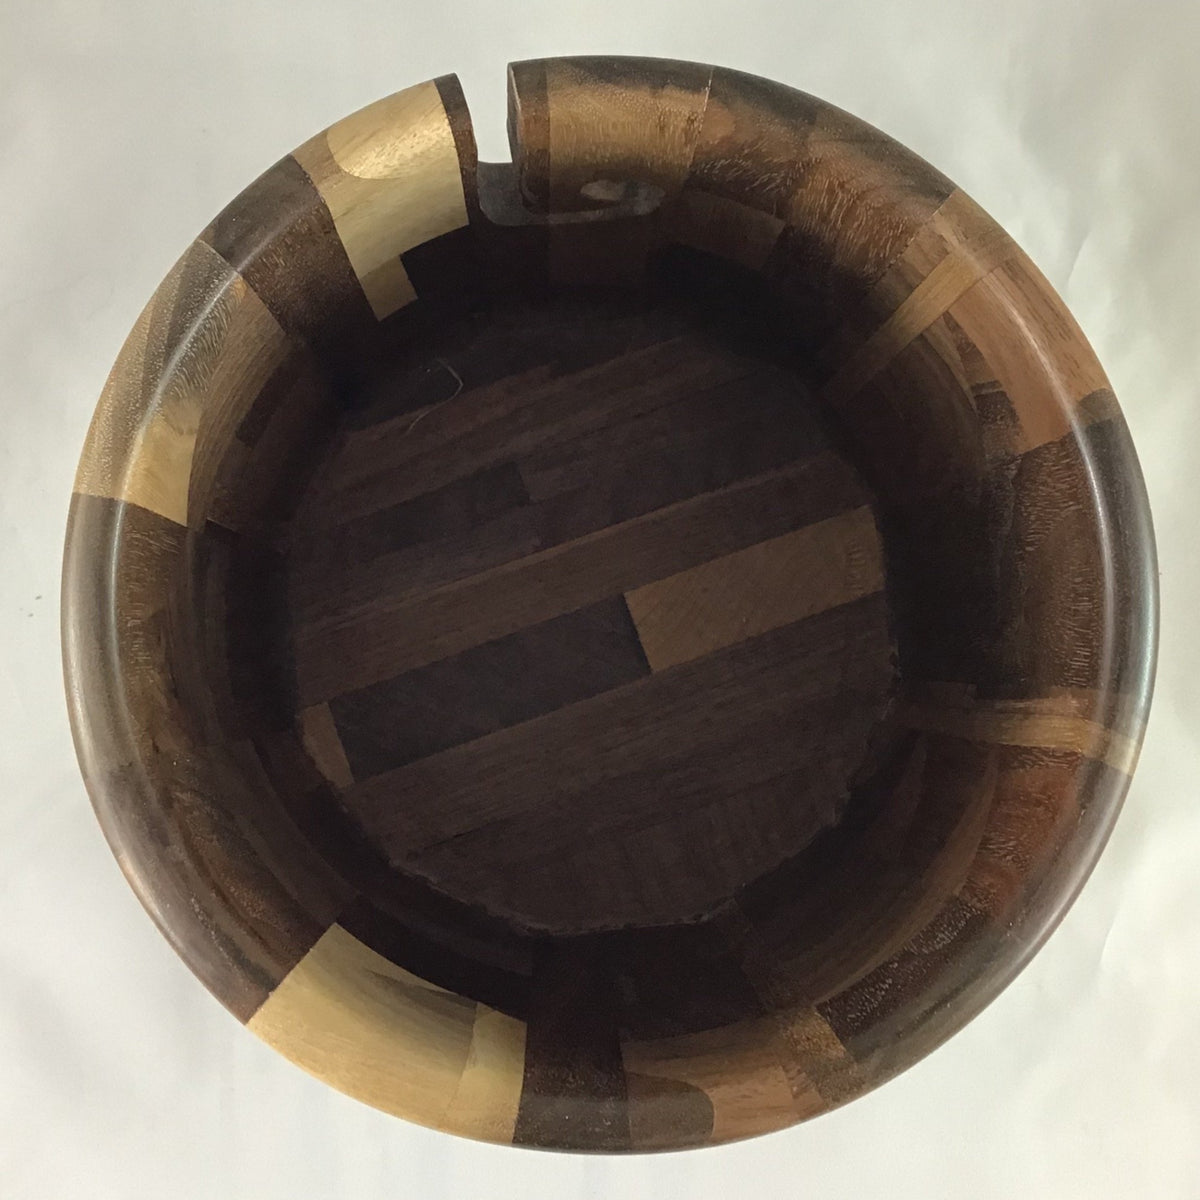 The inside of a wooden yarn bowl made from Walnut wood against a white backdrop